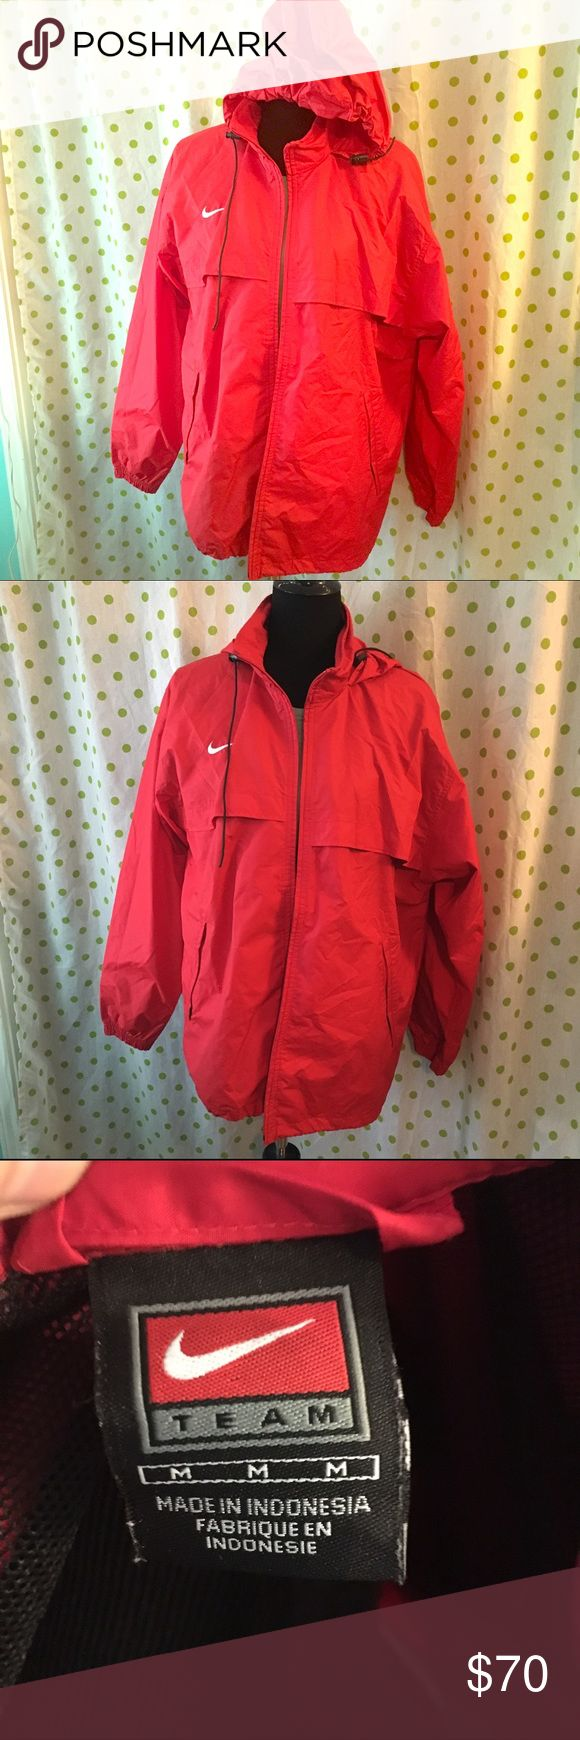 Best Price: Red Nike Rain Jacket This may be a men's jacket, not sure, but it is a size medium, fits oversized, so great for layering. Excellent condition! I would say it could fit medium to possibly XL. Pockets, hood, zips up, red color with white nike swoosh. Nike Jackets & Coats